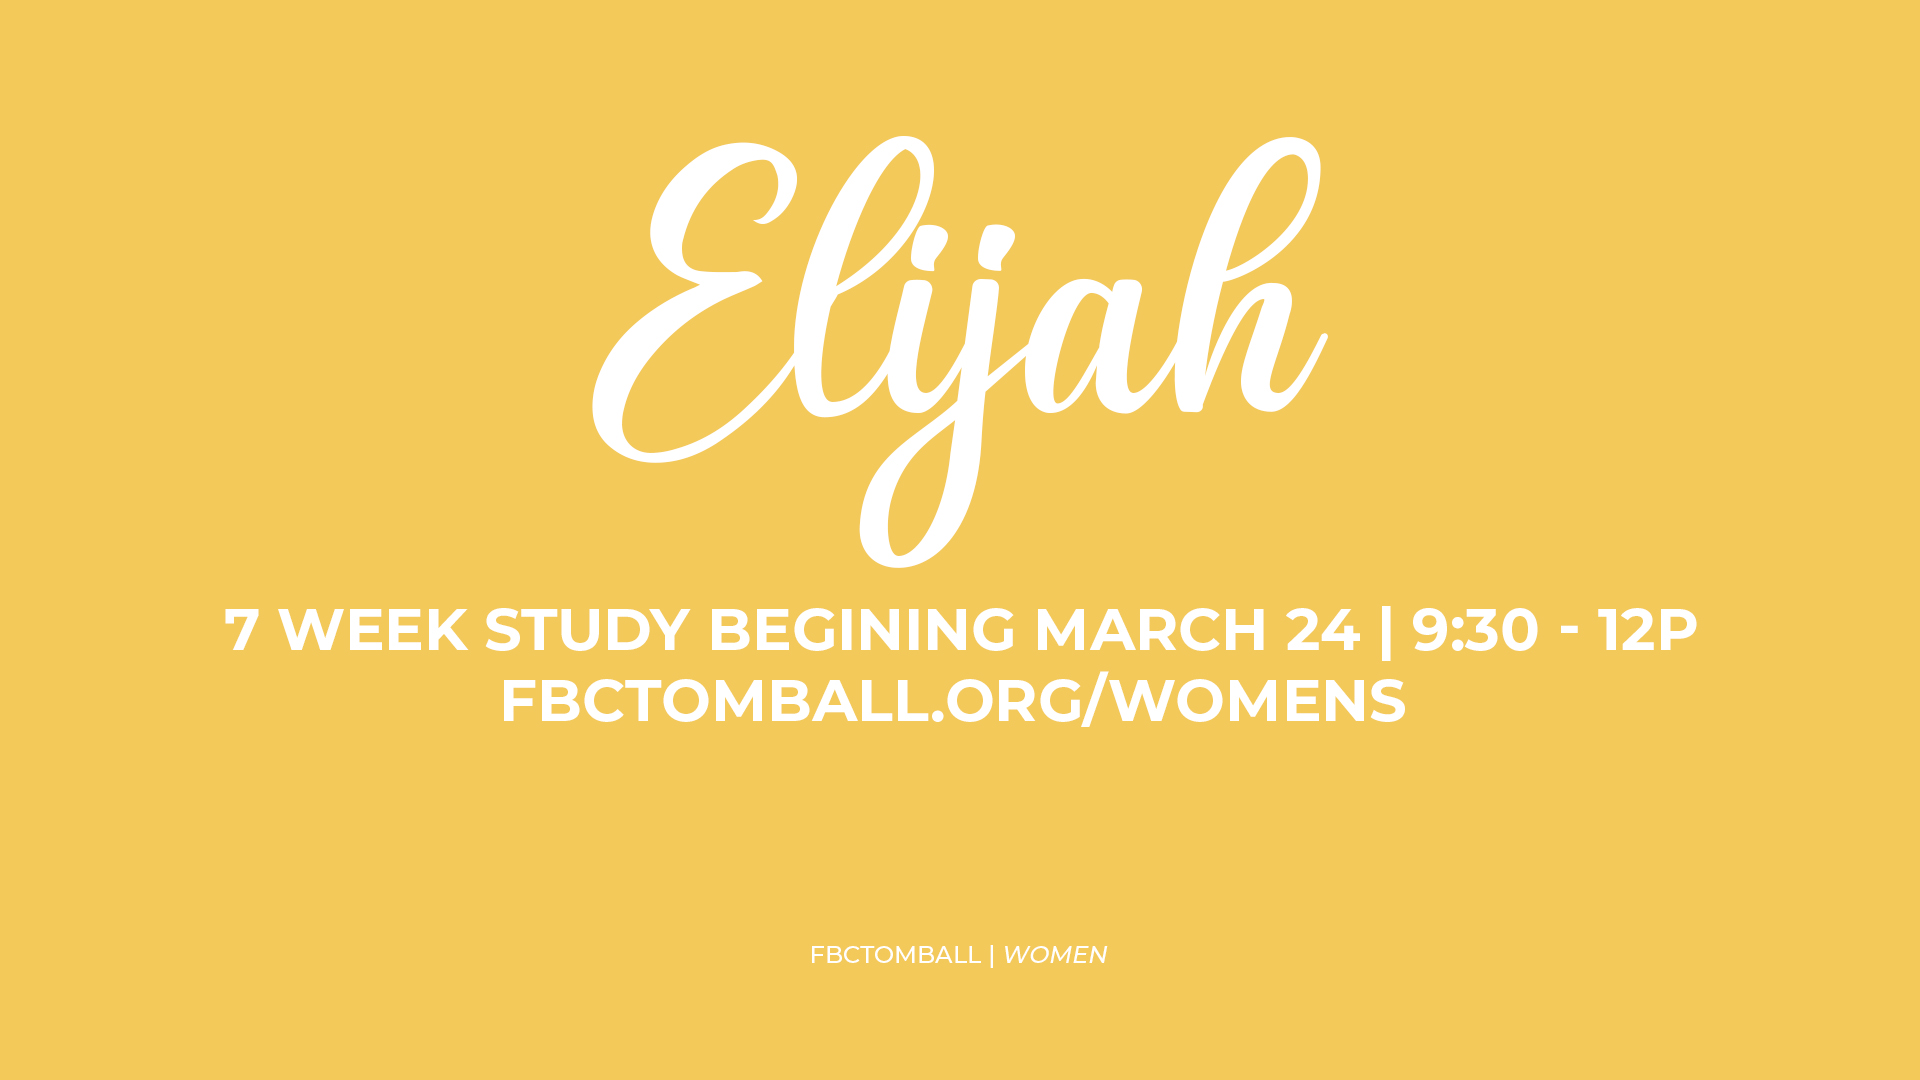 elijah study_wednesdays corrected image